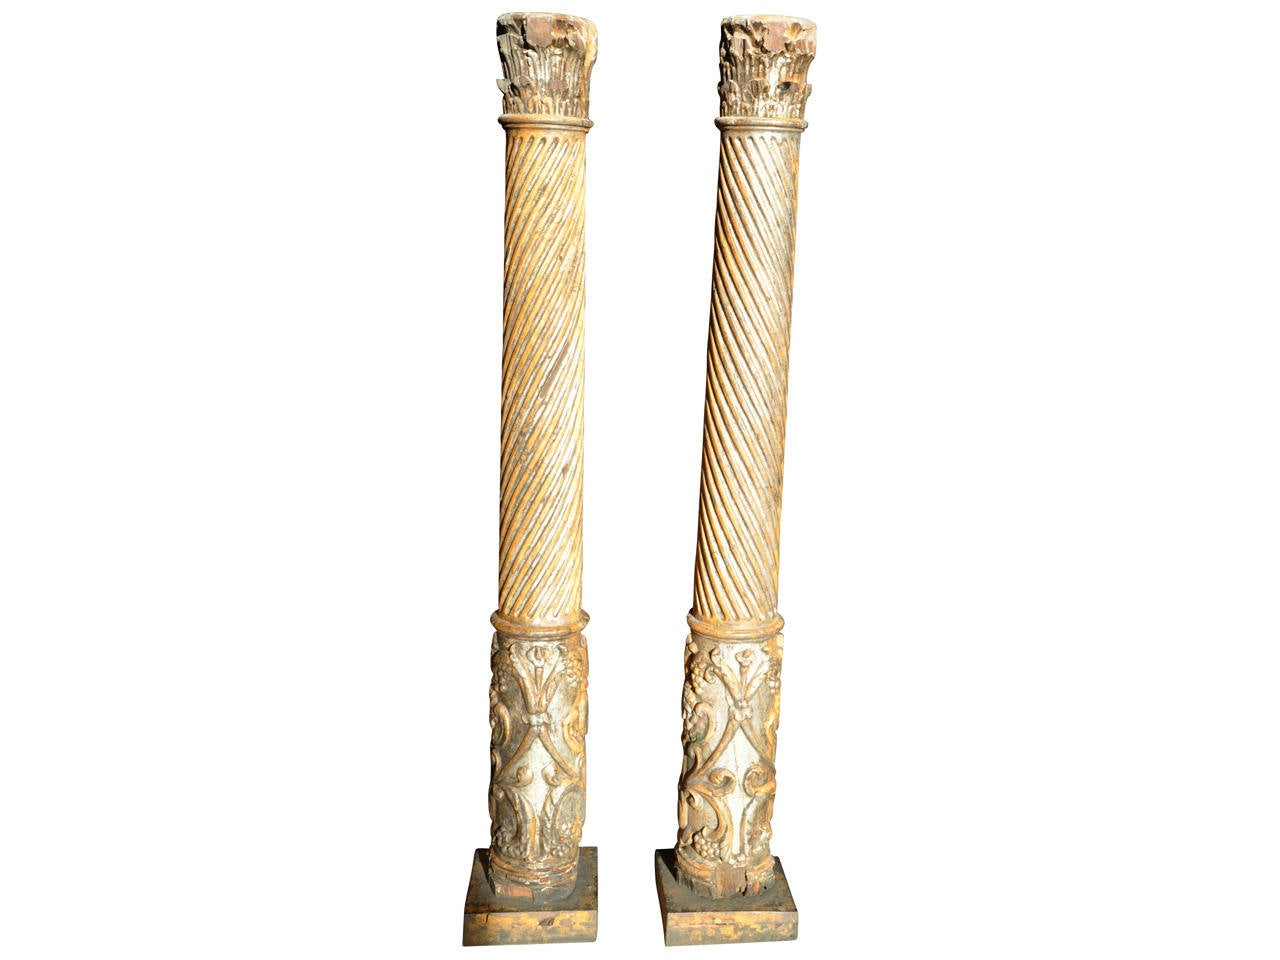 A stunning pair of 17th century Spanish Colonial wooden columns beautifully carved and adorned with cherubs and bunches of grapes. These spectacular columns retain a good bit of the original silver gilt and polychromed finish.